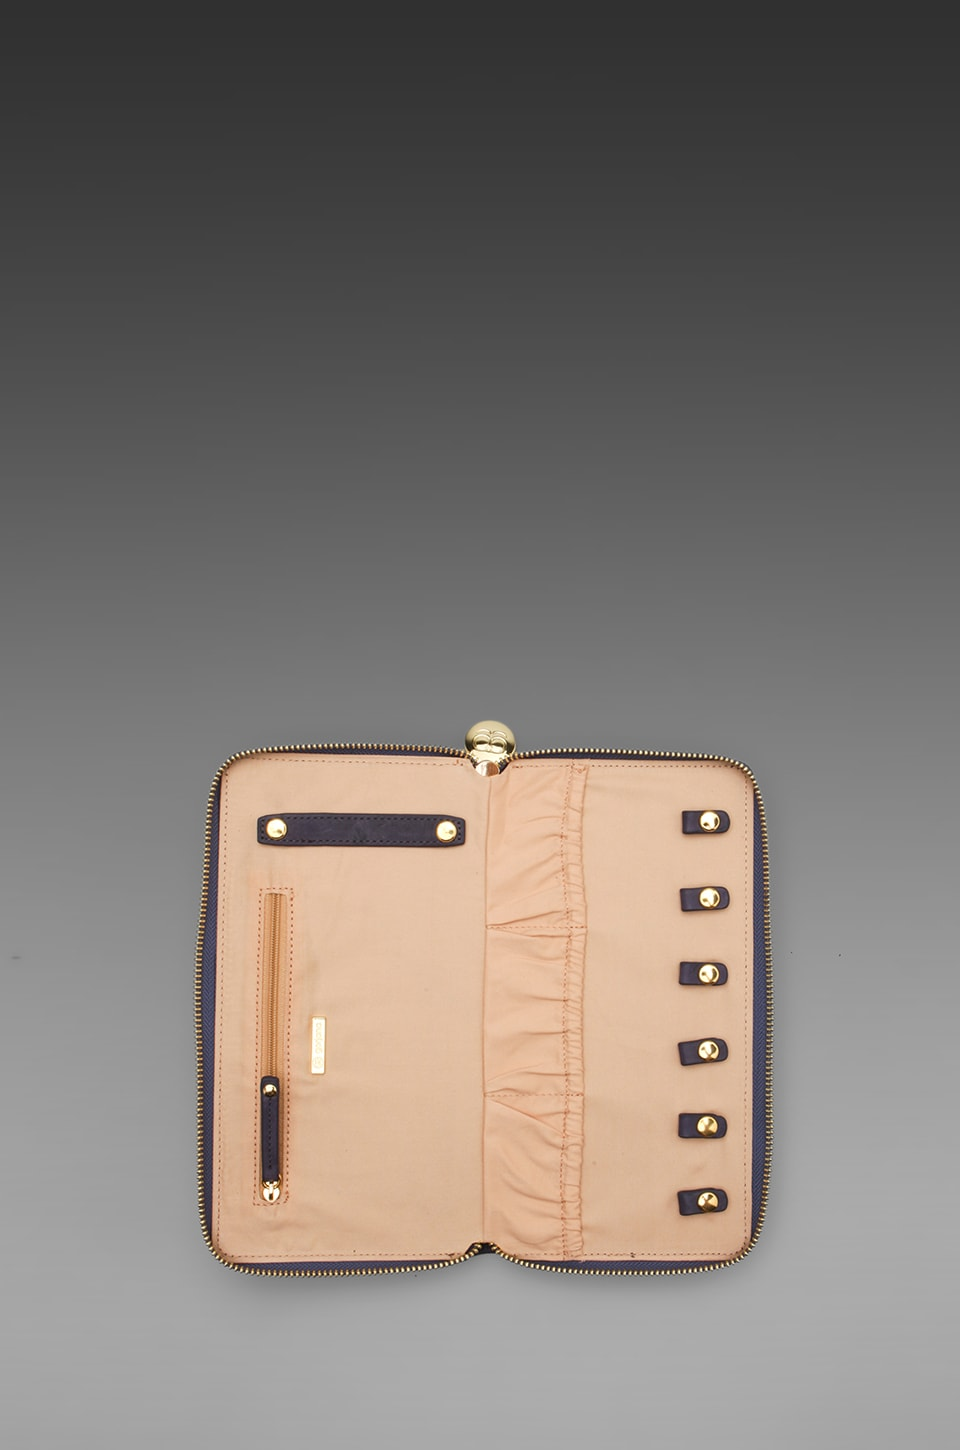 gorjana Thompson Jewelry Wallet in Indigo/Pale Peach